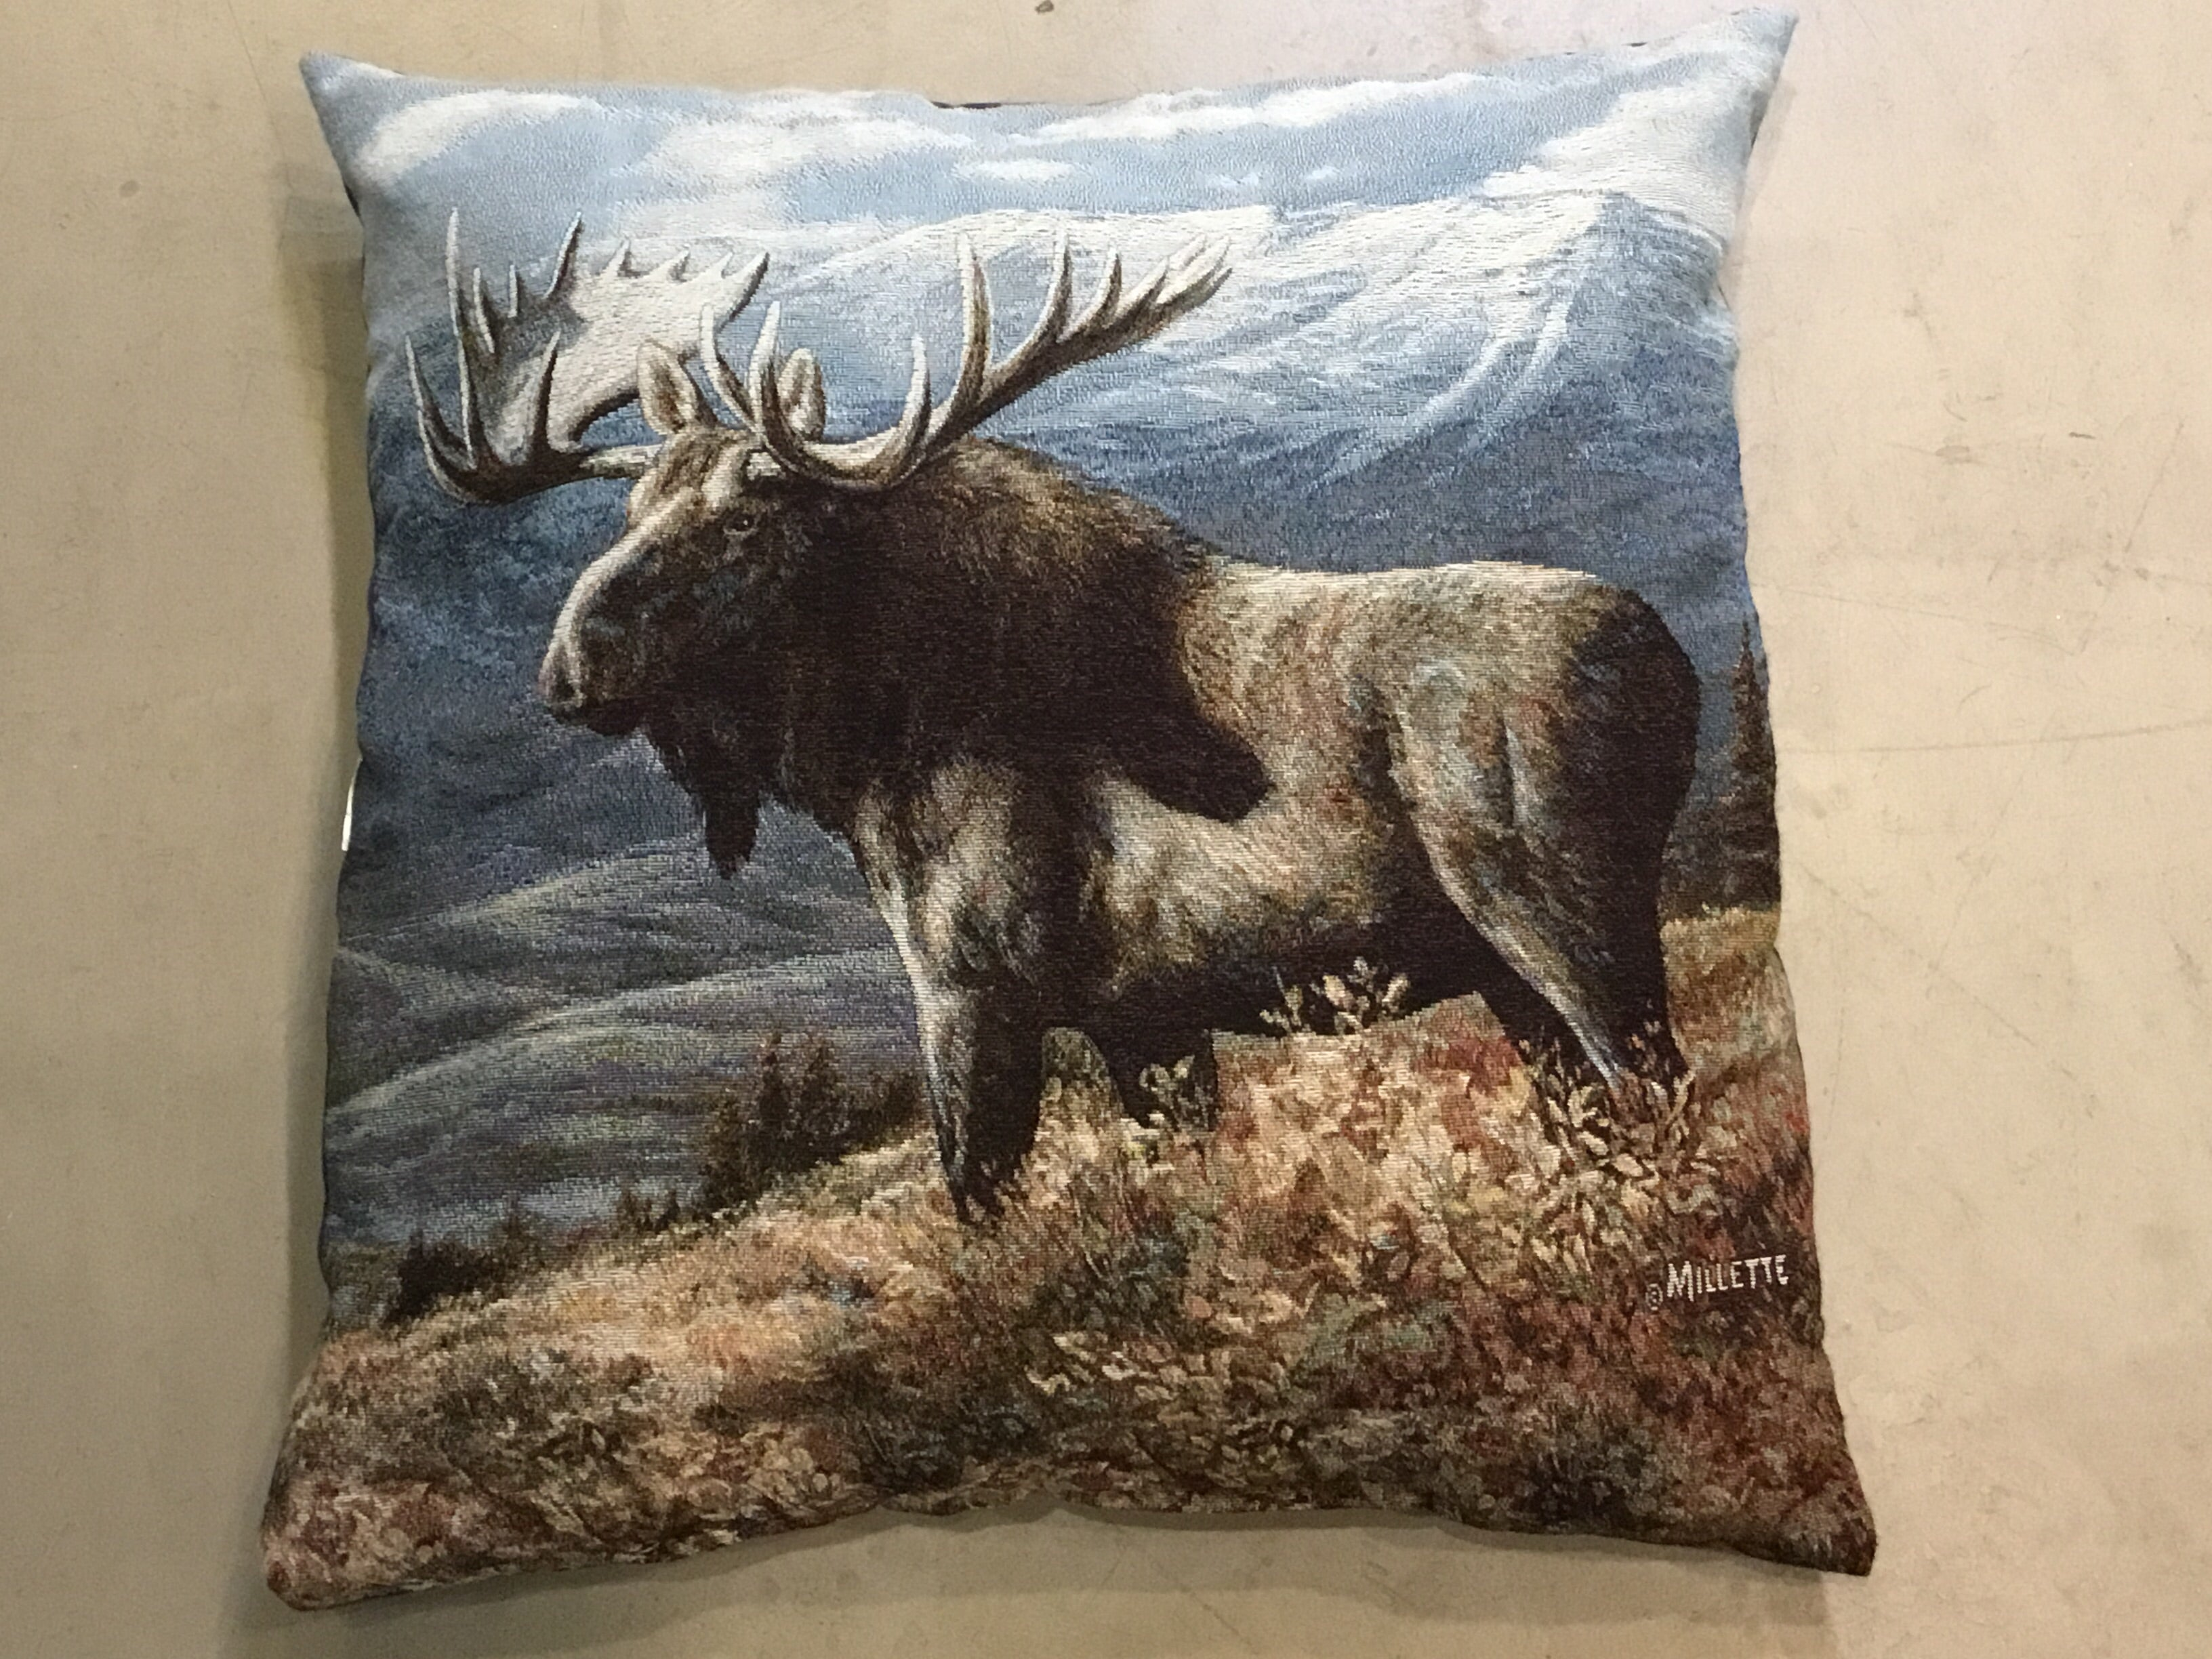 Moose Pillow by Rosemary Millette